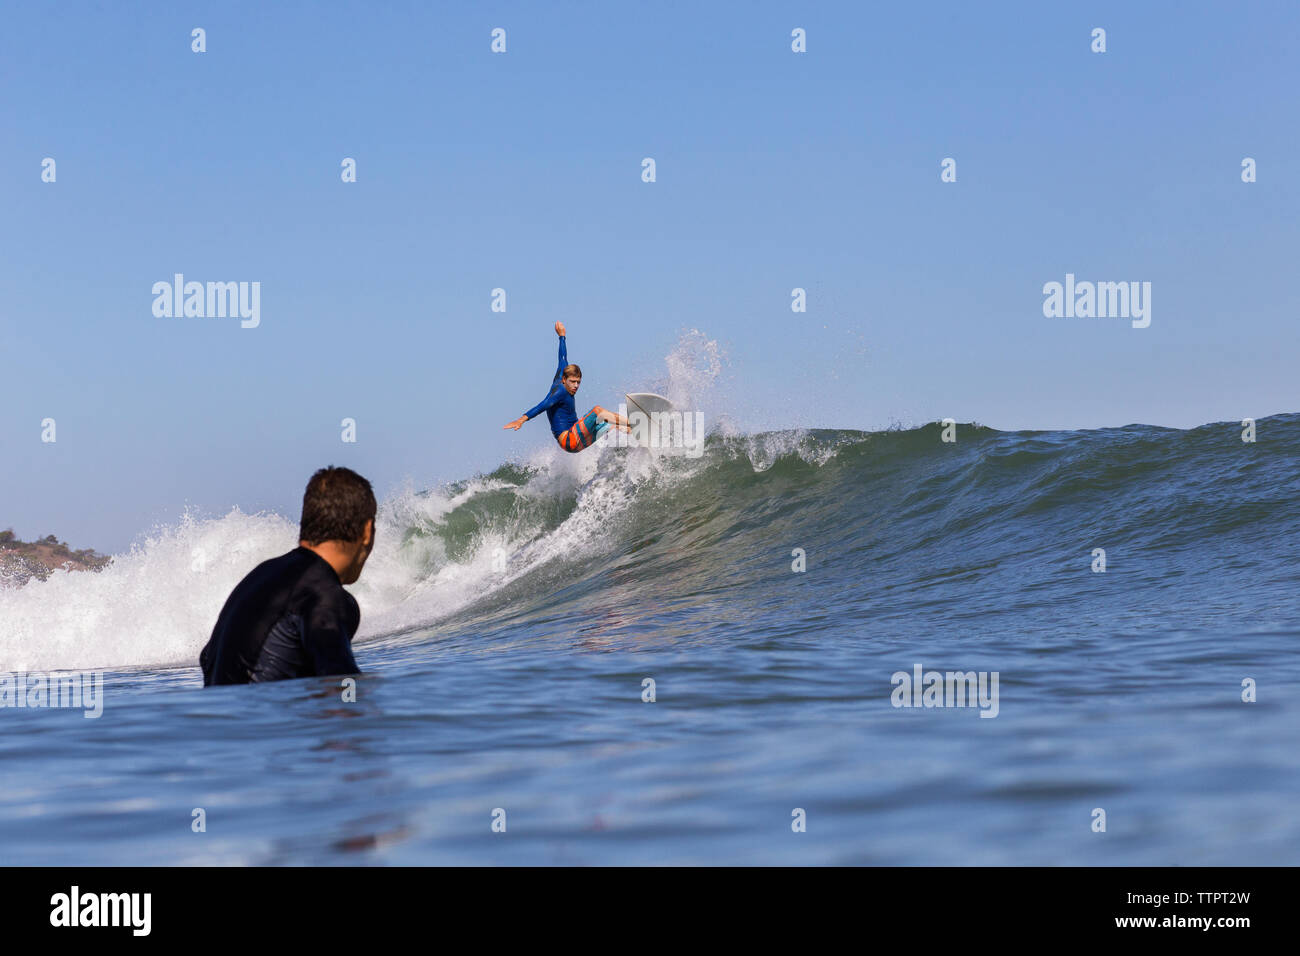 Man looking at friend surfing on sea against clear blue sky - Stock Image